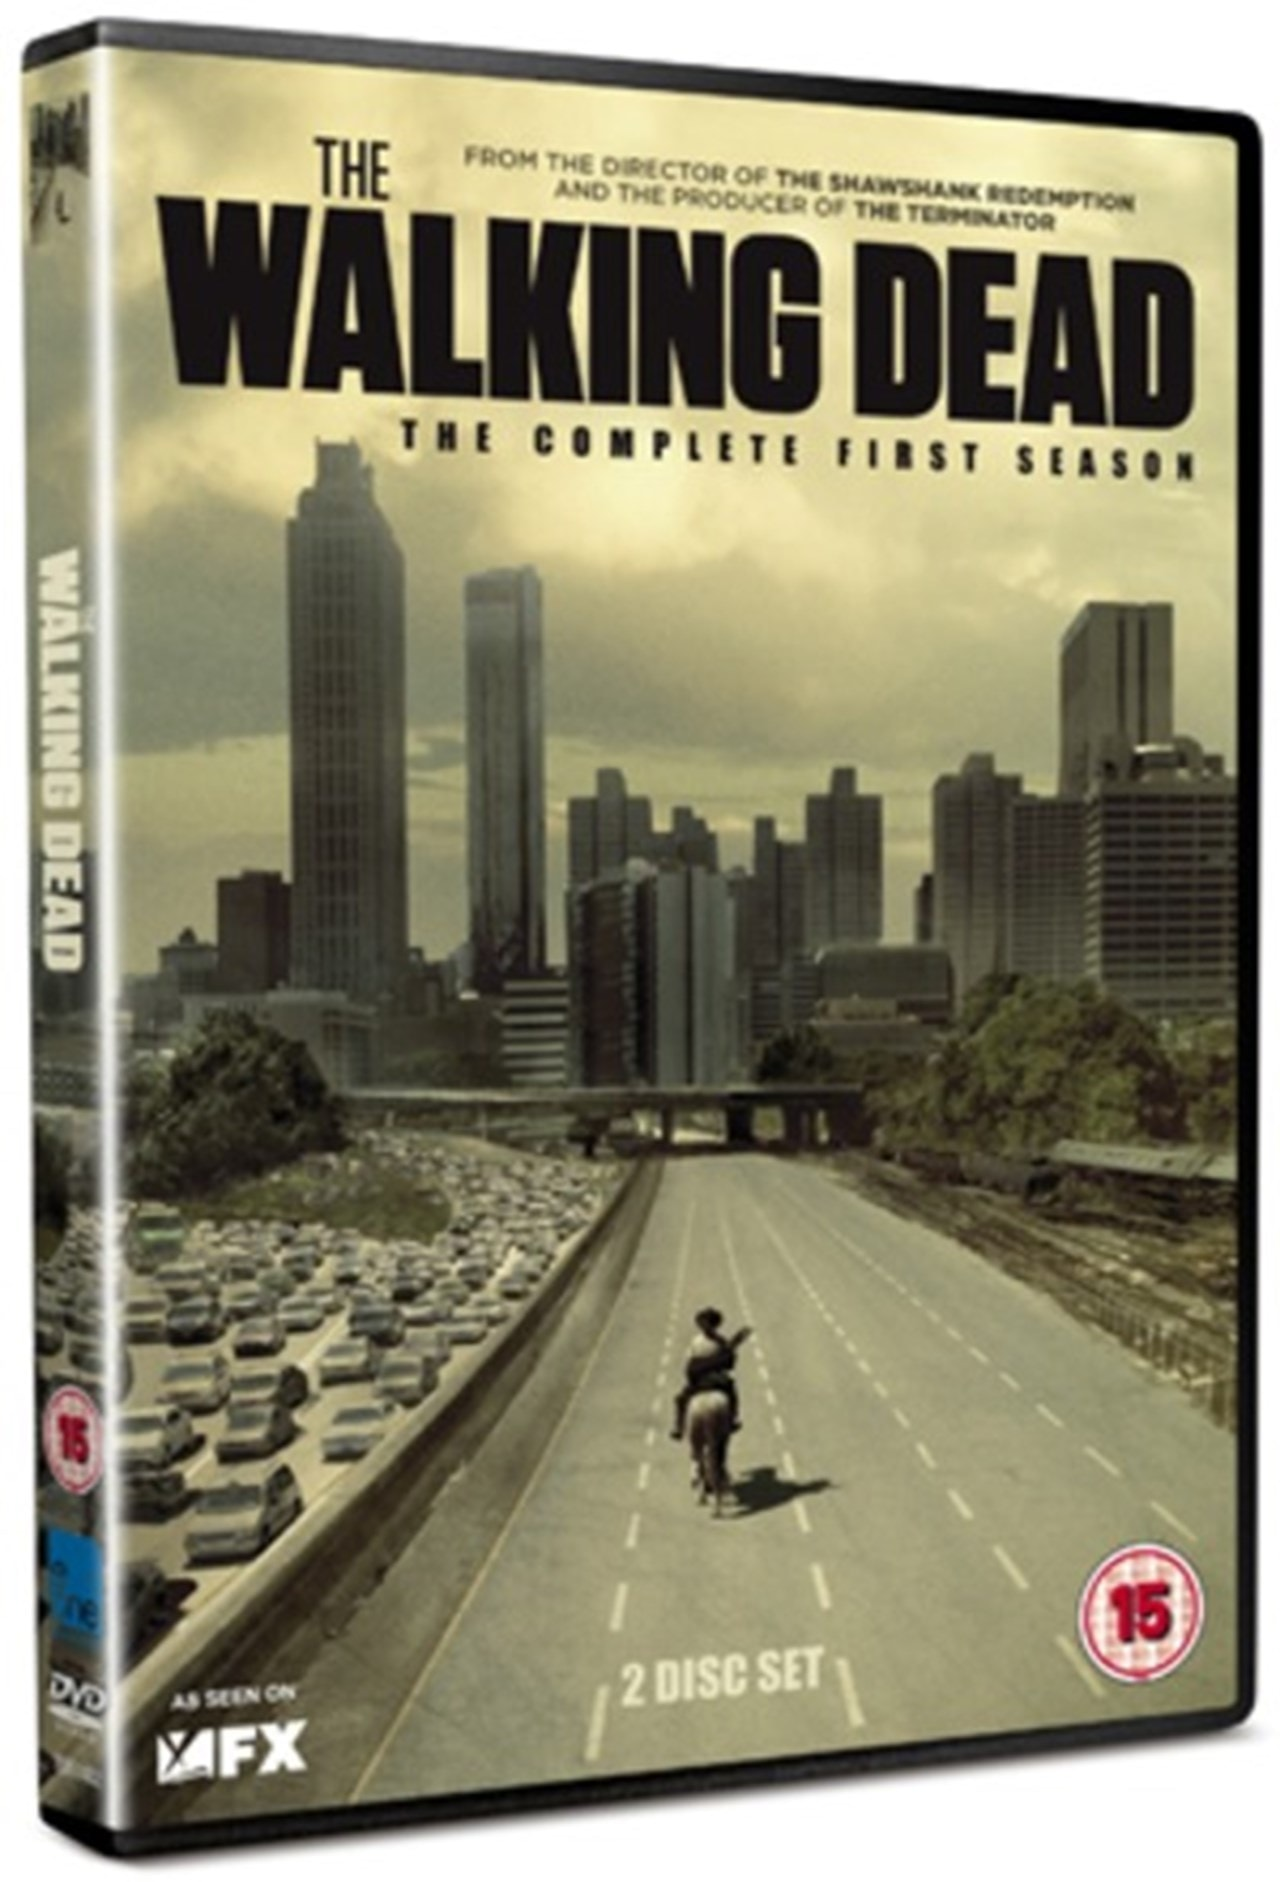 The Walking Dead: The Complete First Season - 1